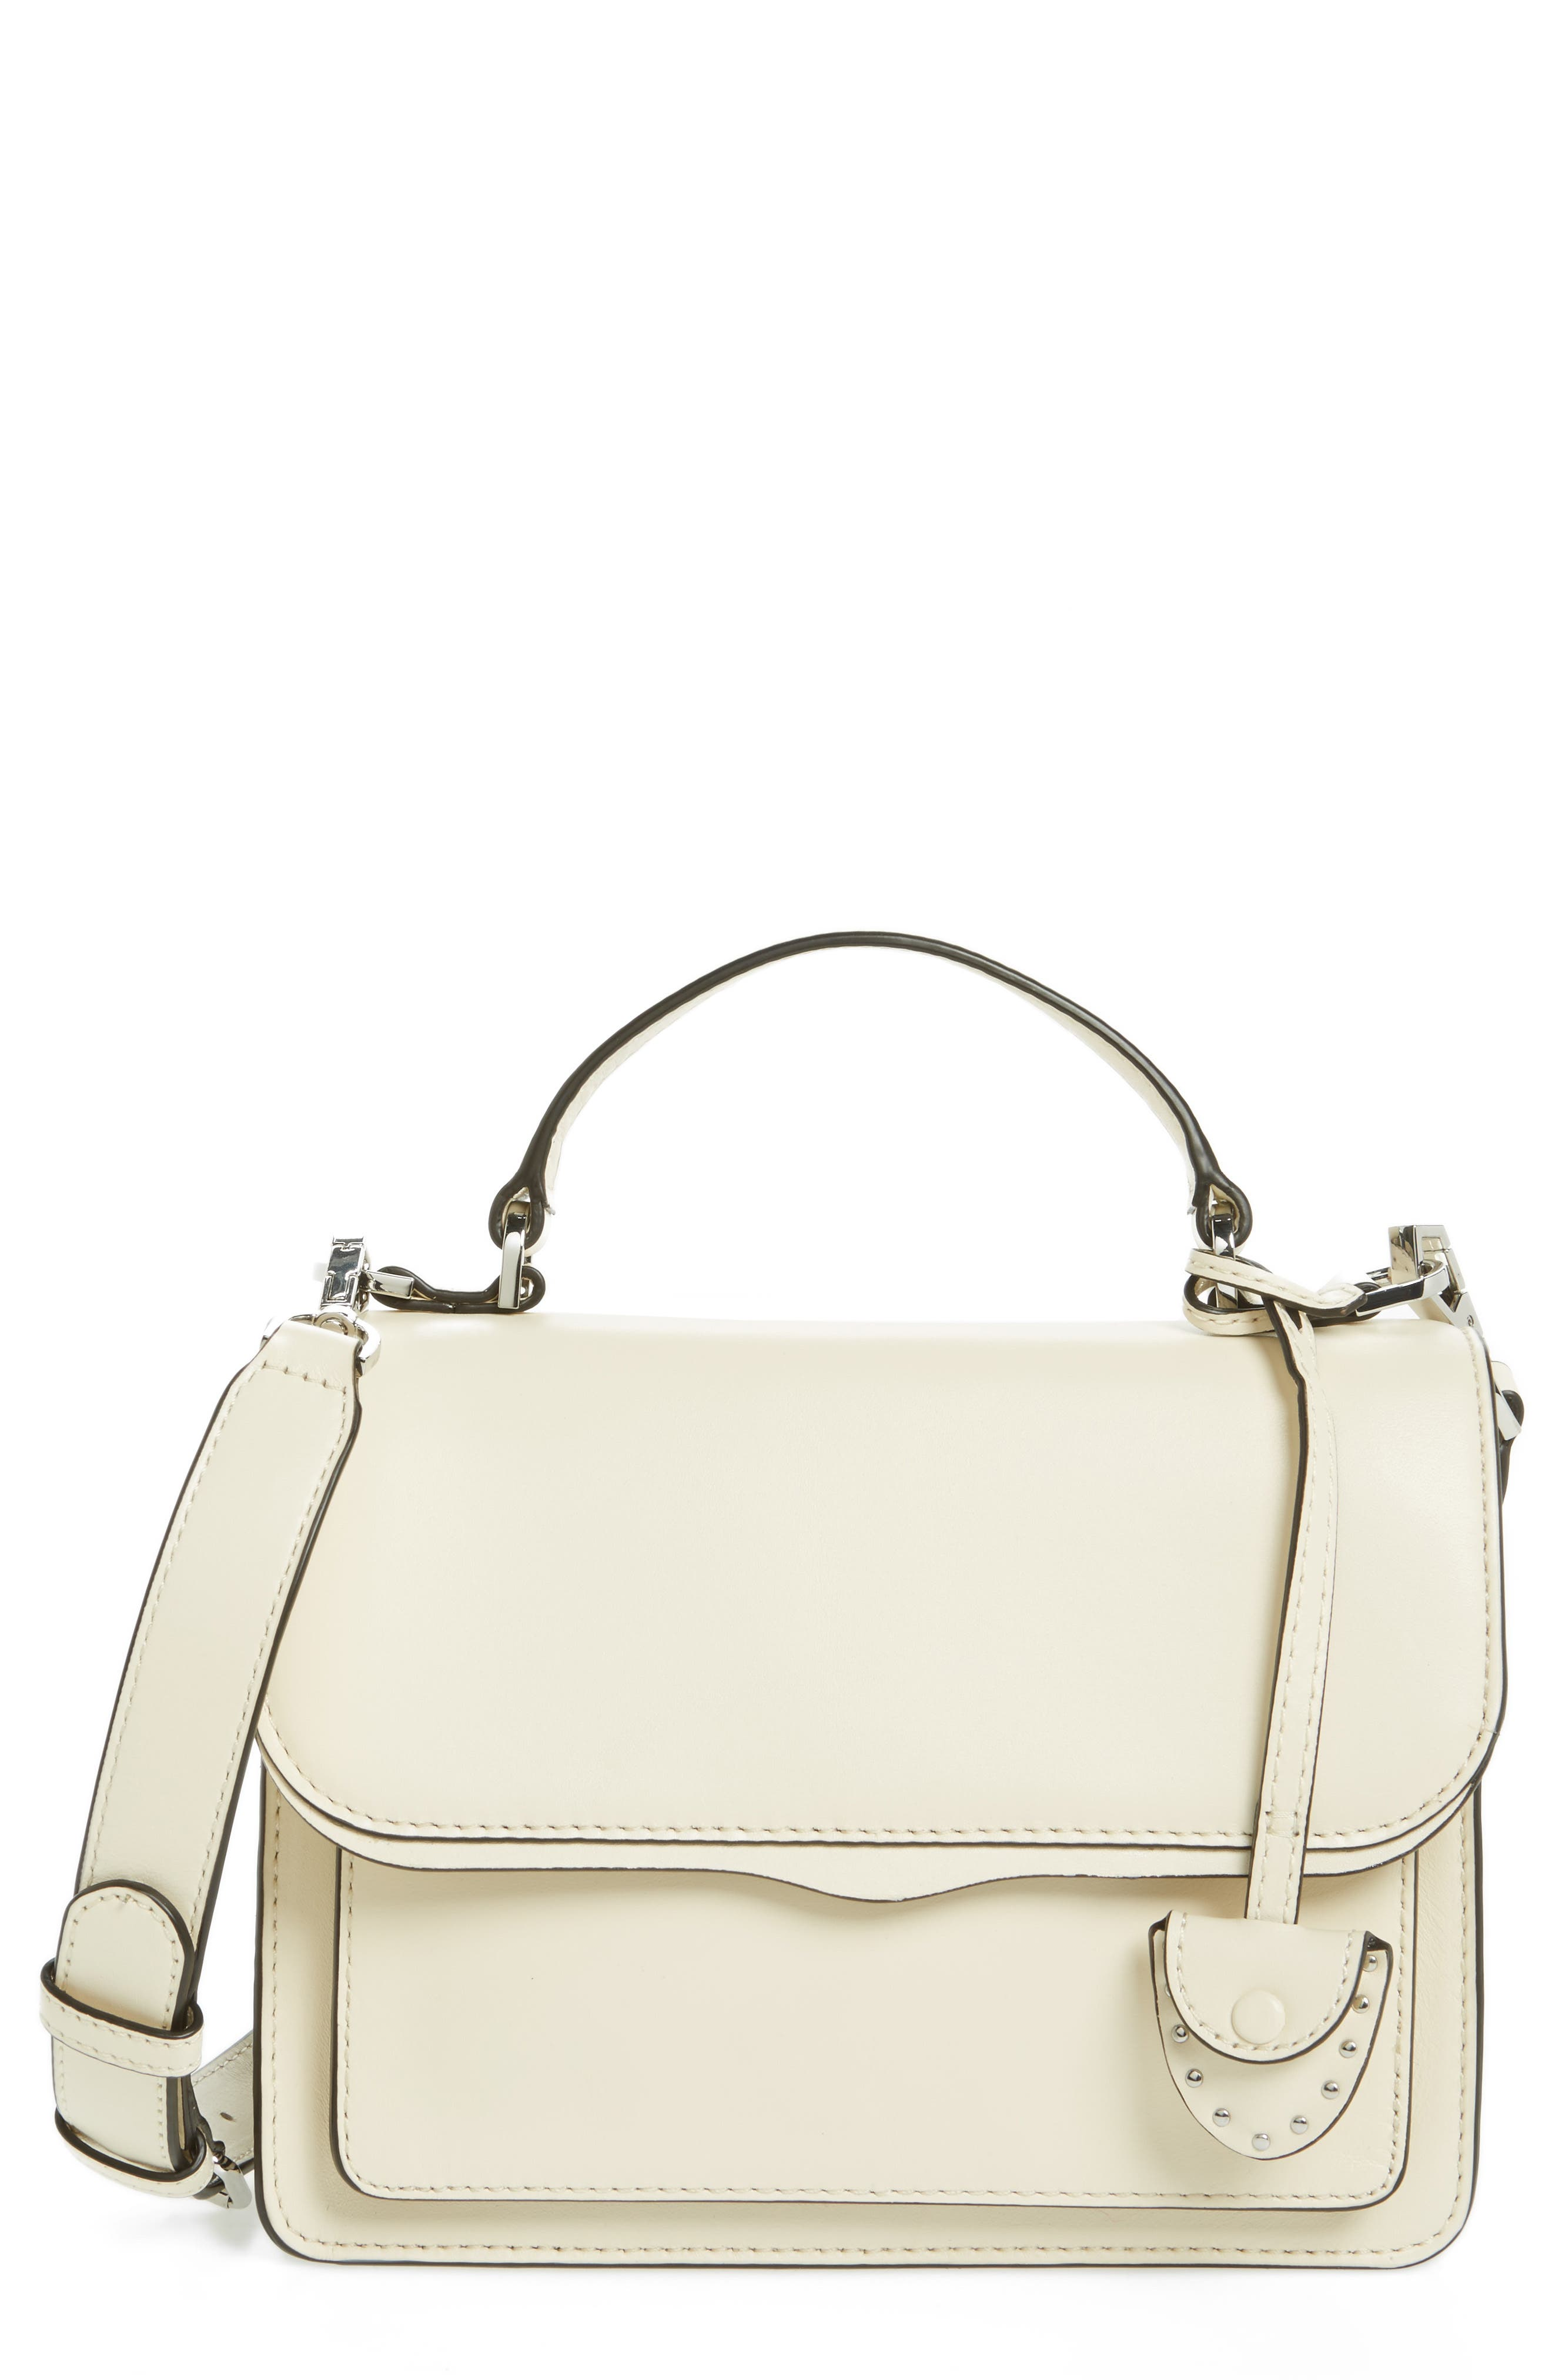 Small Top Handle Crossbody Bag,                         Main,                         color, Ant Wht Multi